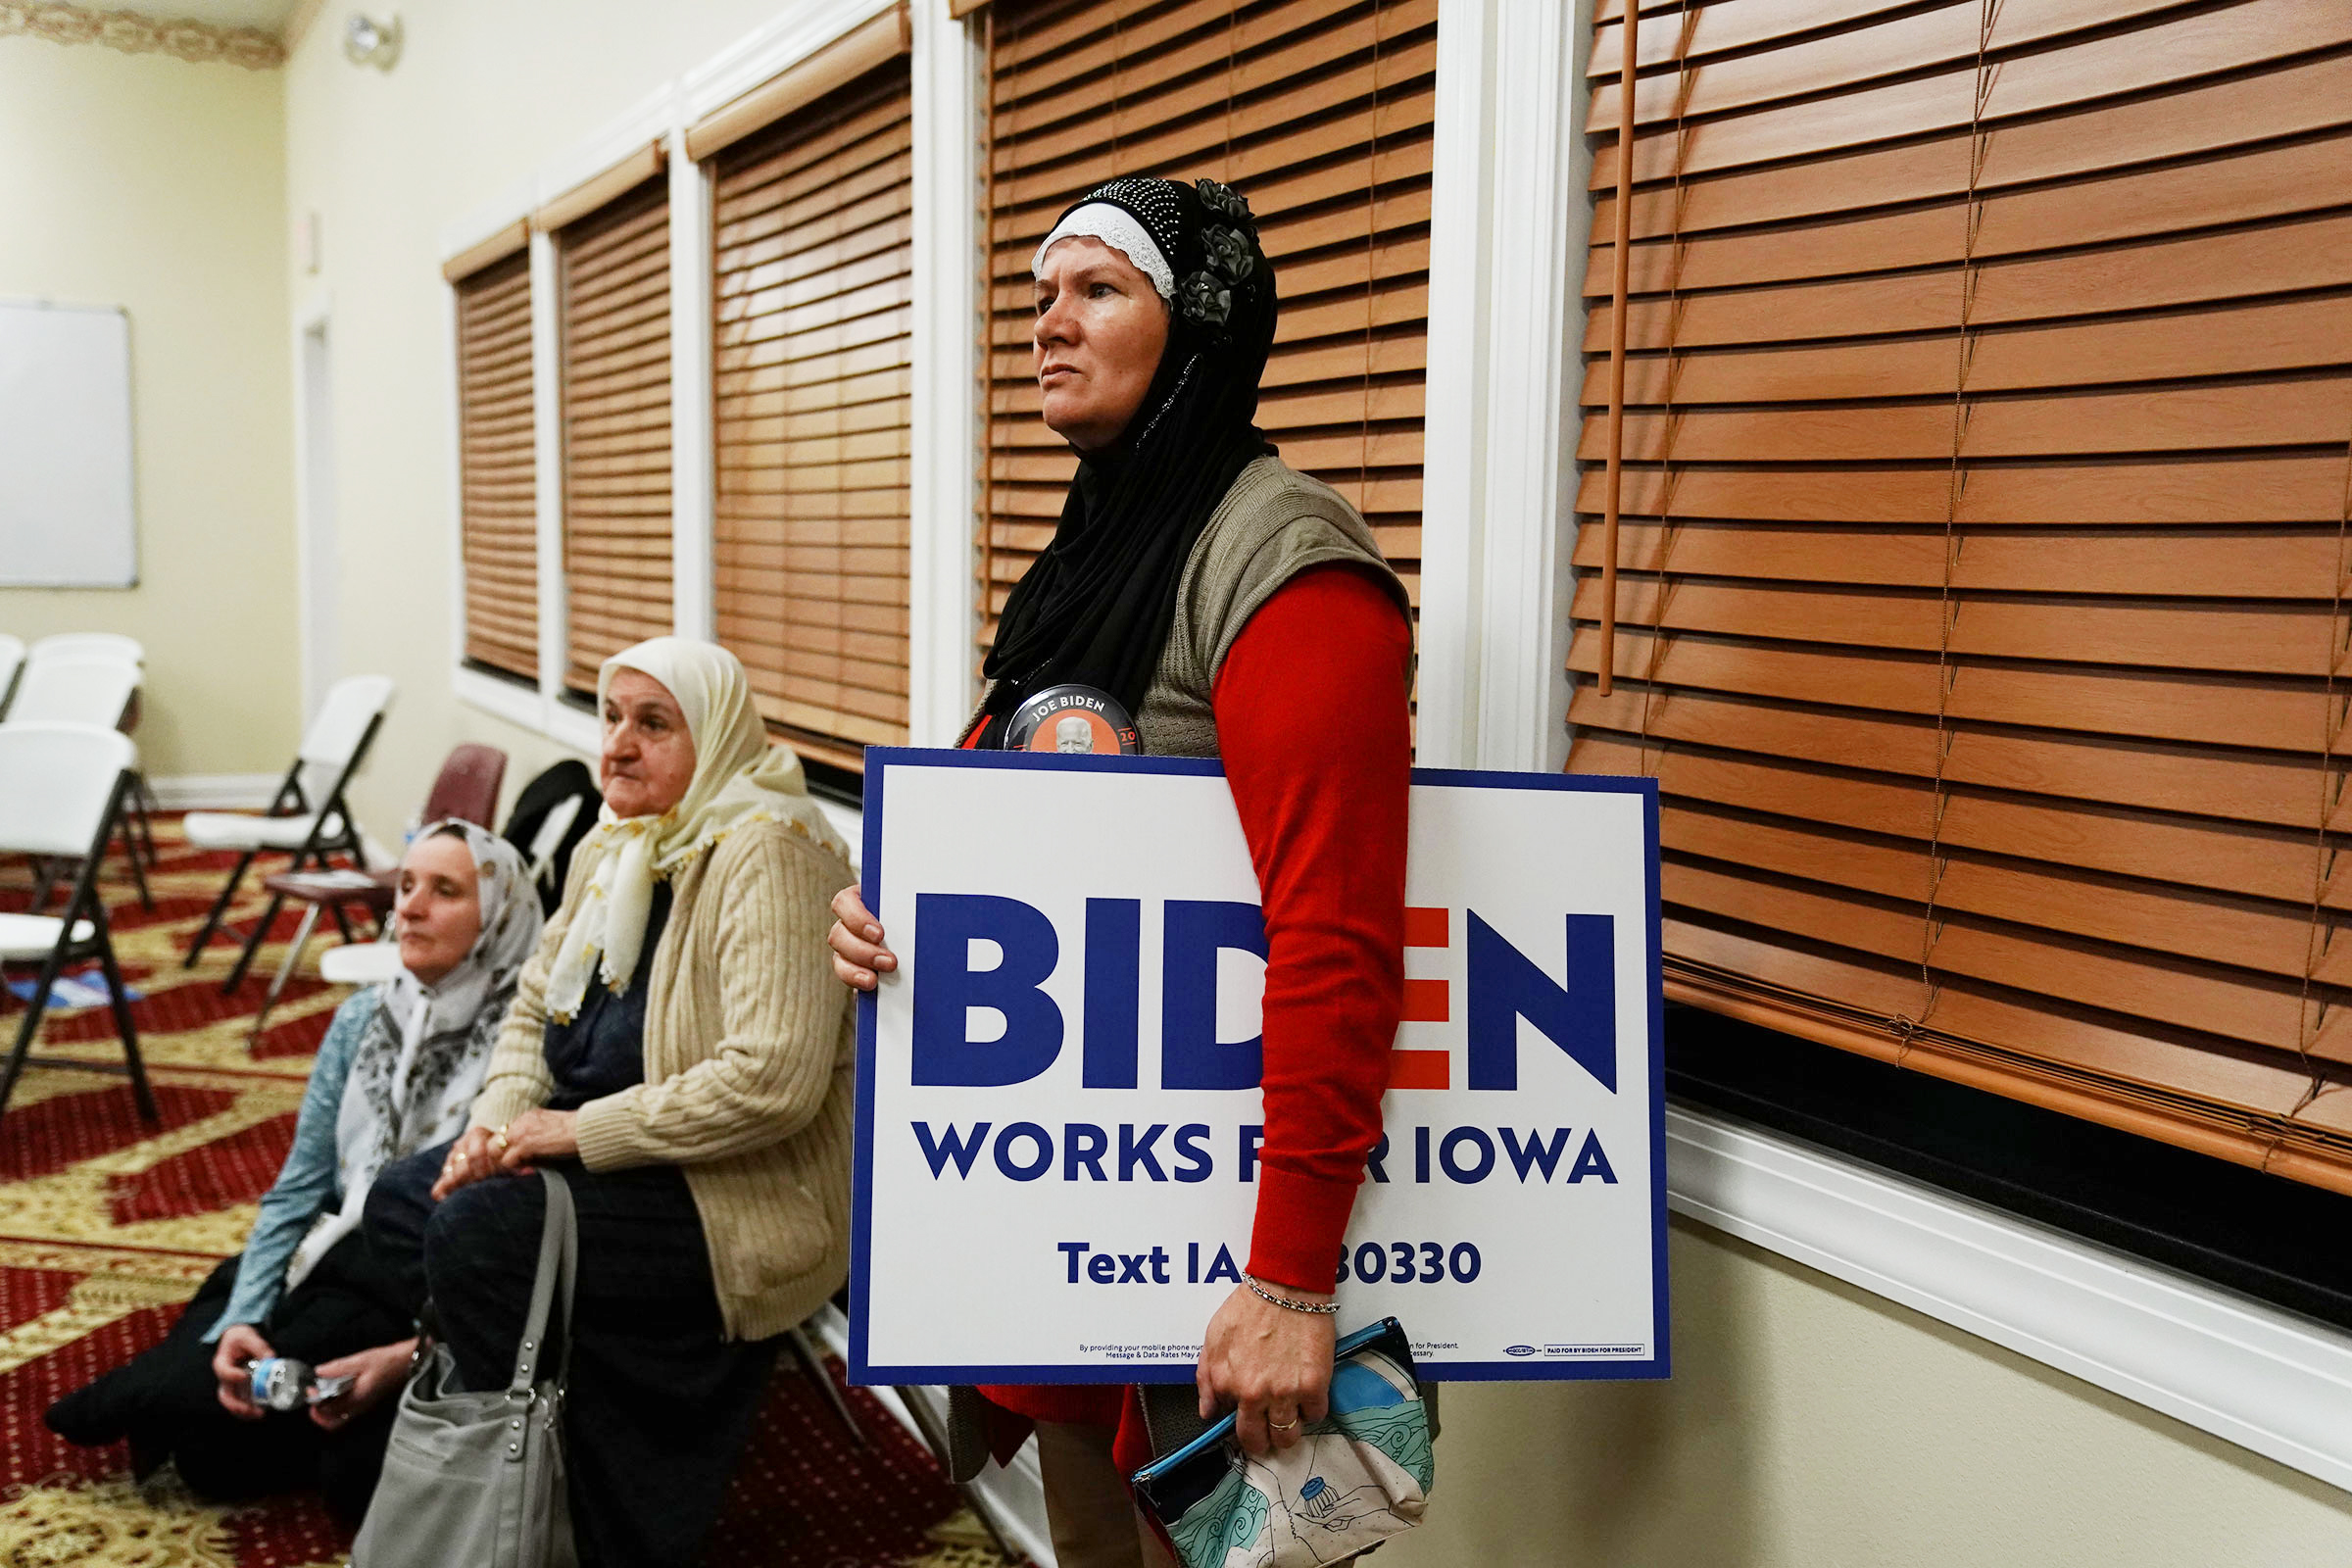 A participant holds a campaign sign for Biden during the first-in-the-nation Iowa caucus in Des Moines.